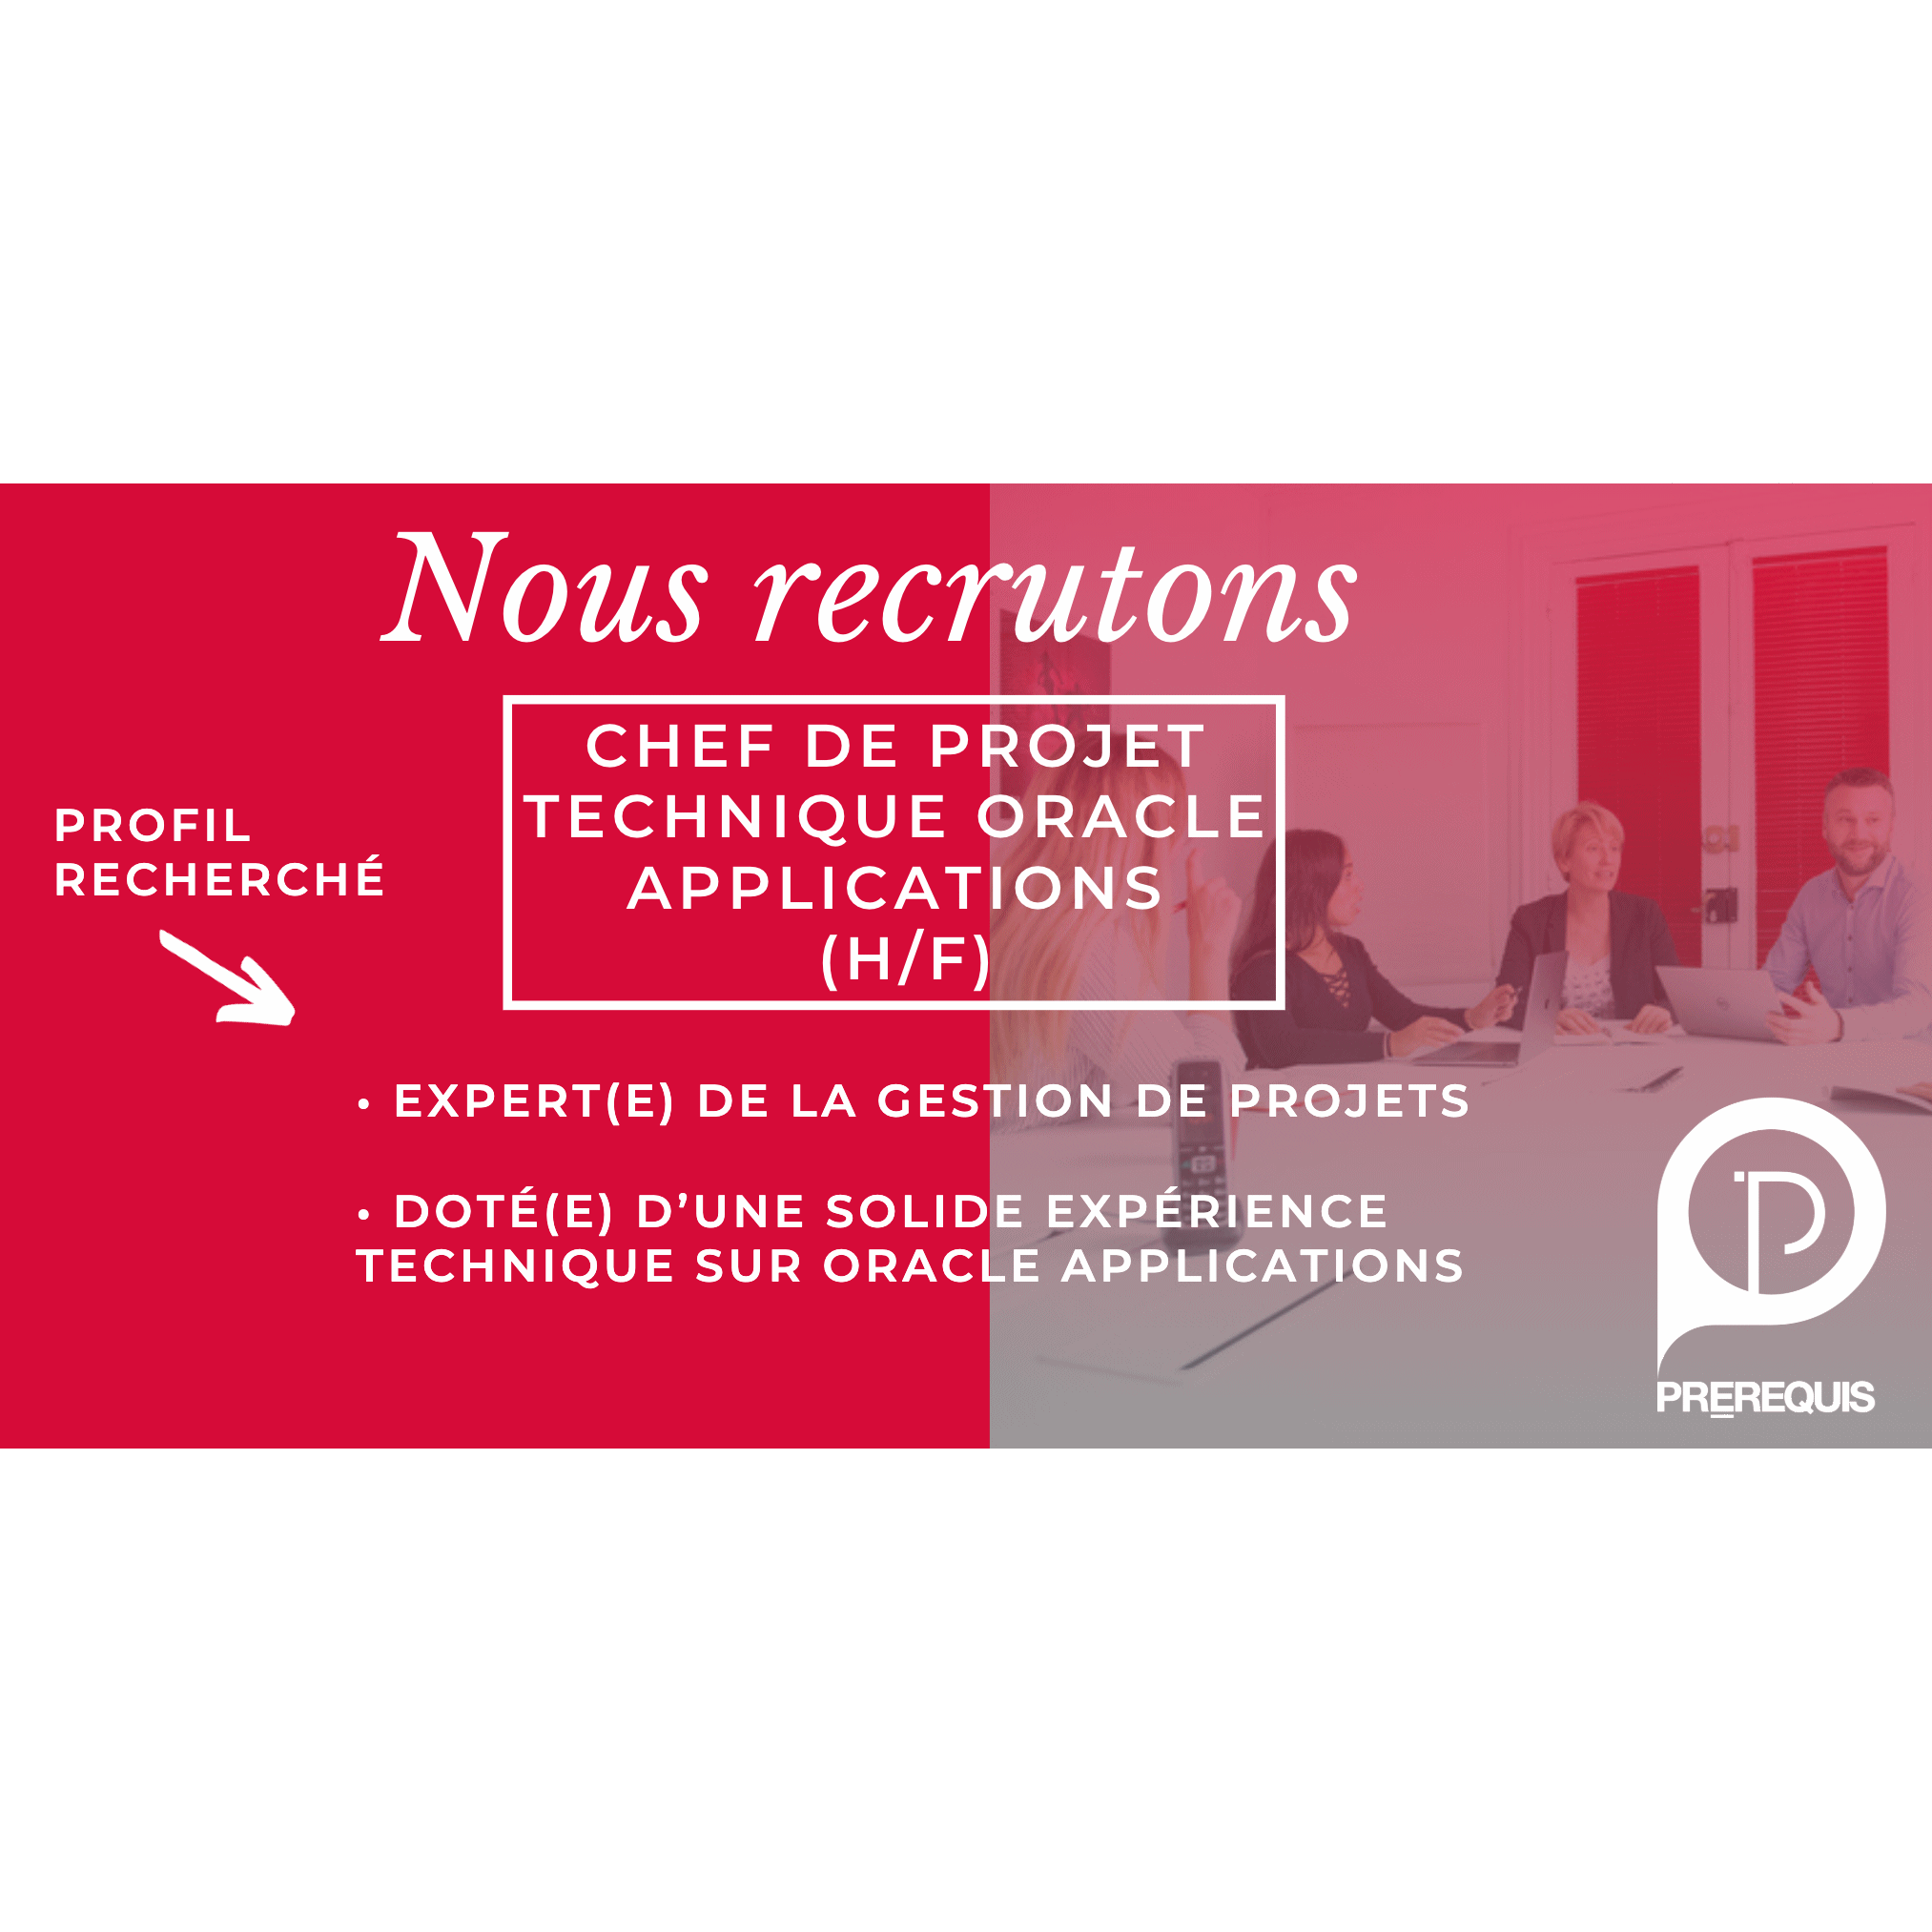 CHEF DE PROJET TECHNIQUE APPLICATIONS (H/F)